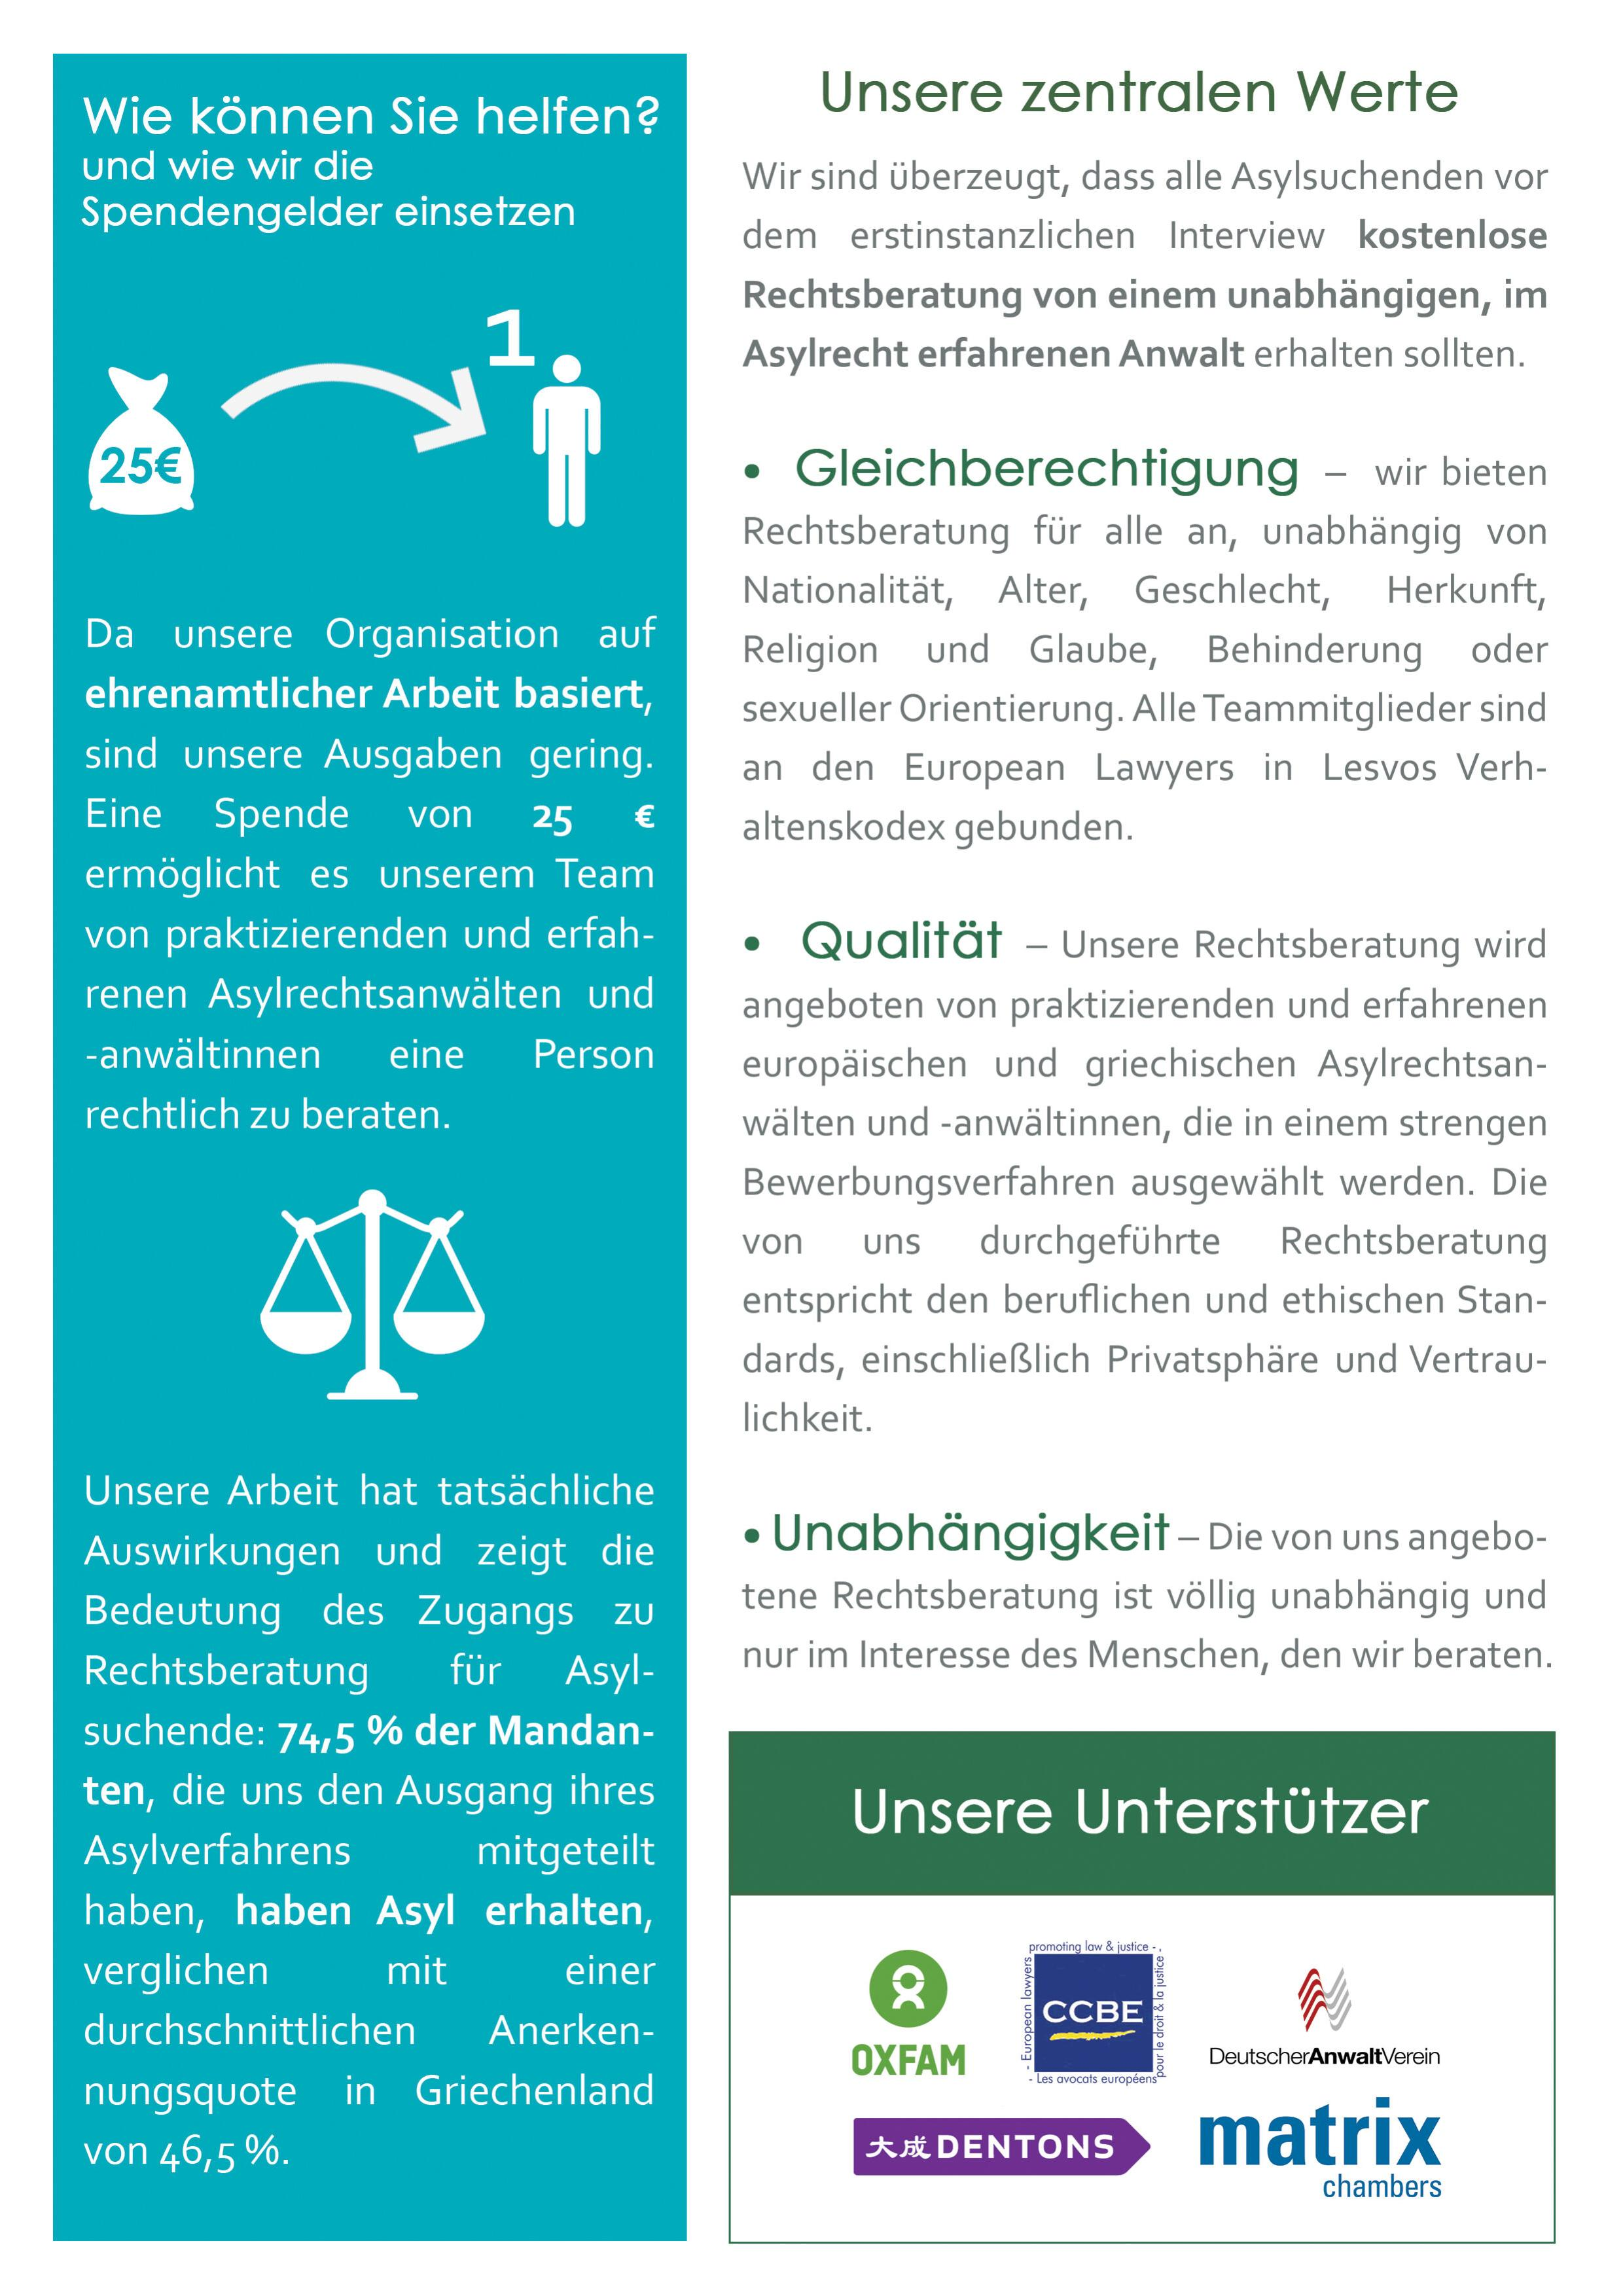 European Lawyers in Lesvos - Infographic_DE-page-003.jpg